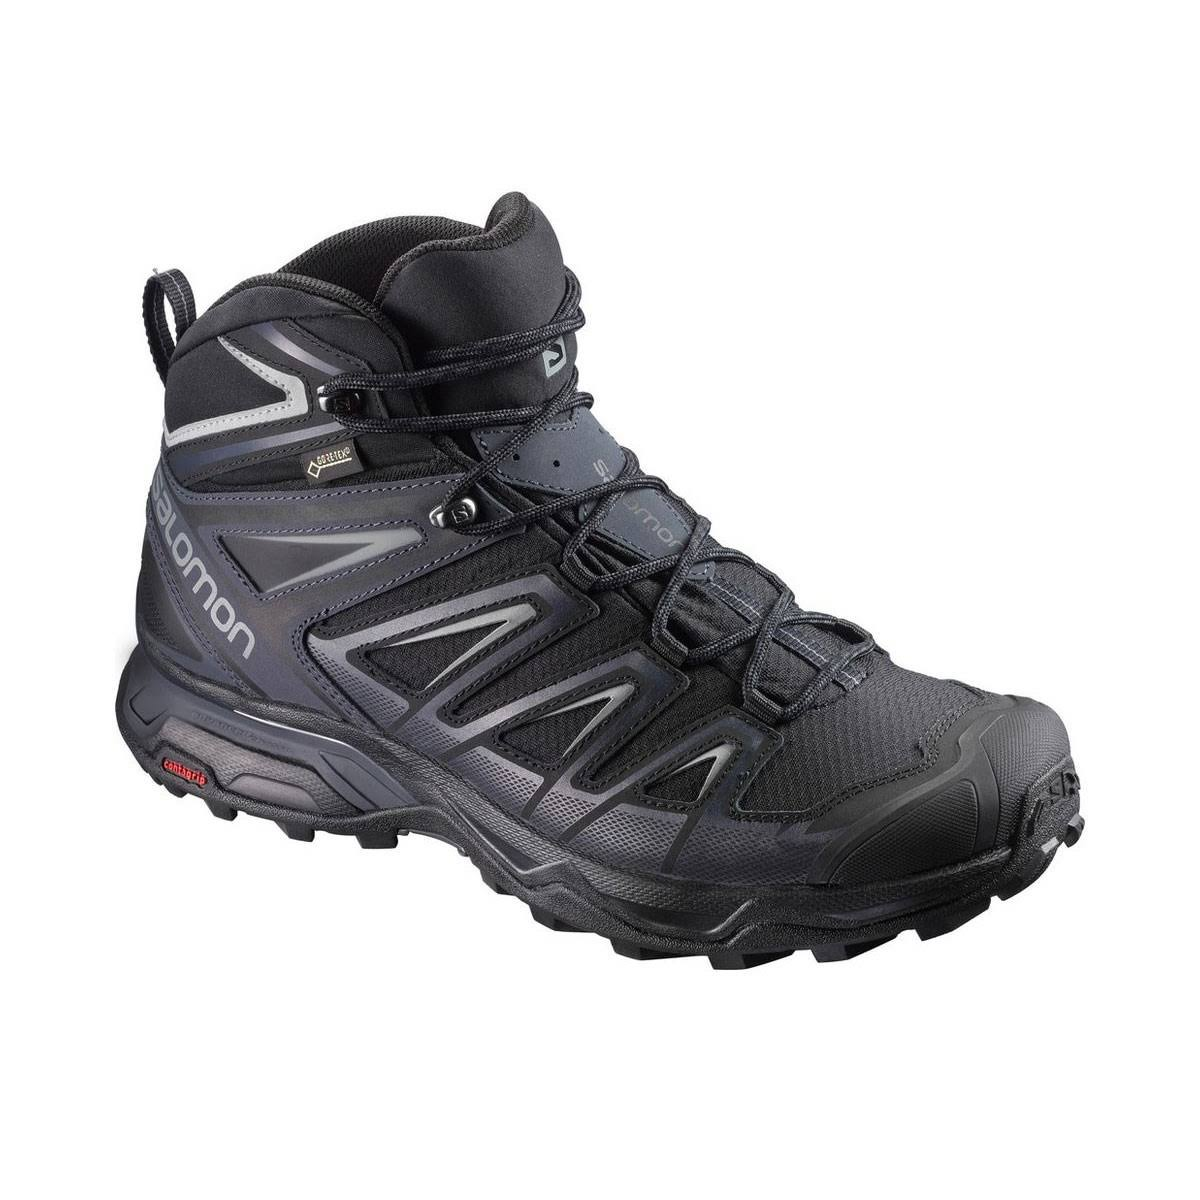 Salomon Men's X Ultra 3 Mid GTX Hiking Boots - Black/Gray, EU42